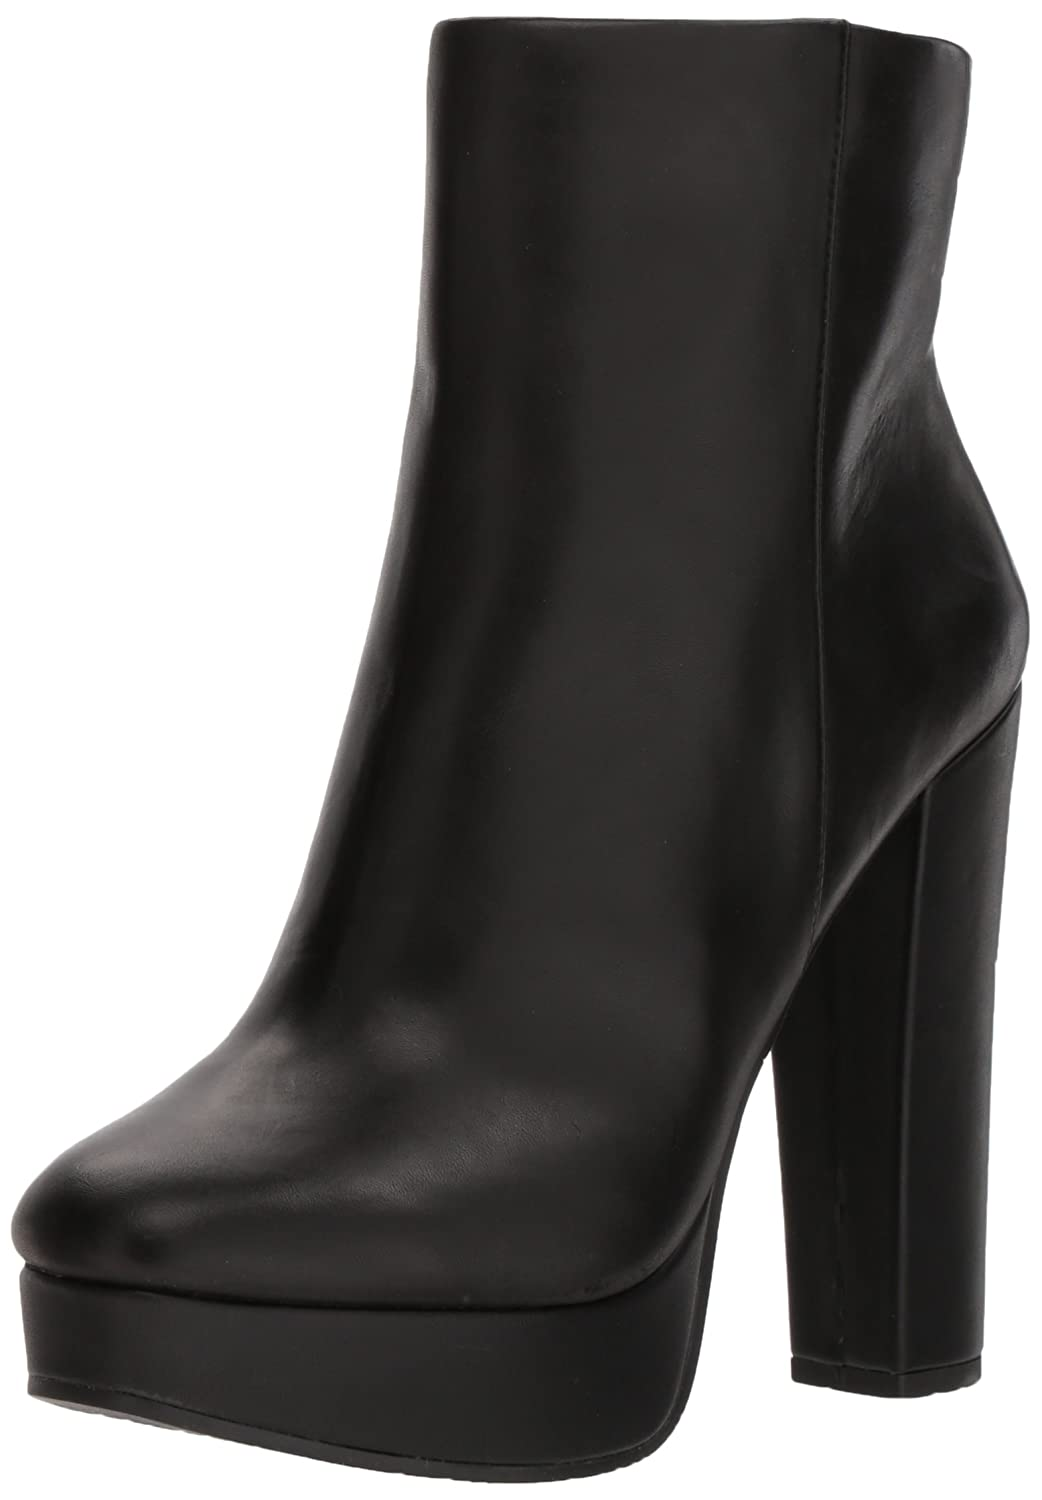 Jessica Simpson Women's Sebille Fashion Boot B075N7BHCK 6 B(M) US|Black Leather